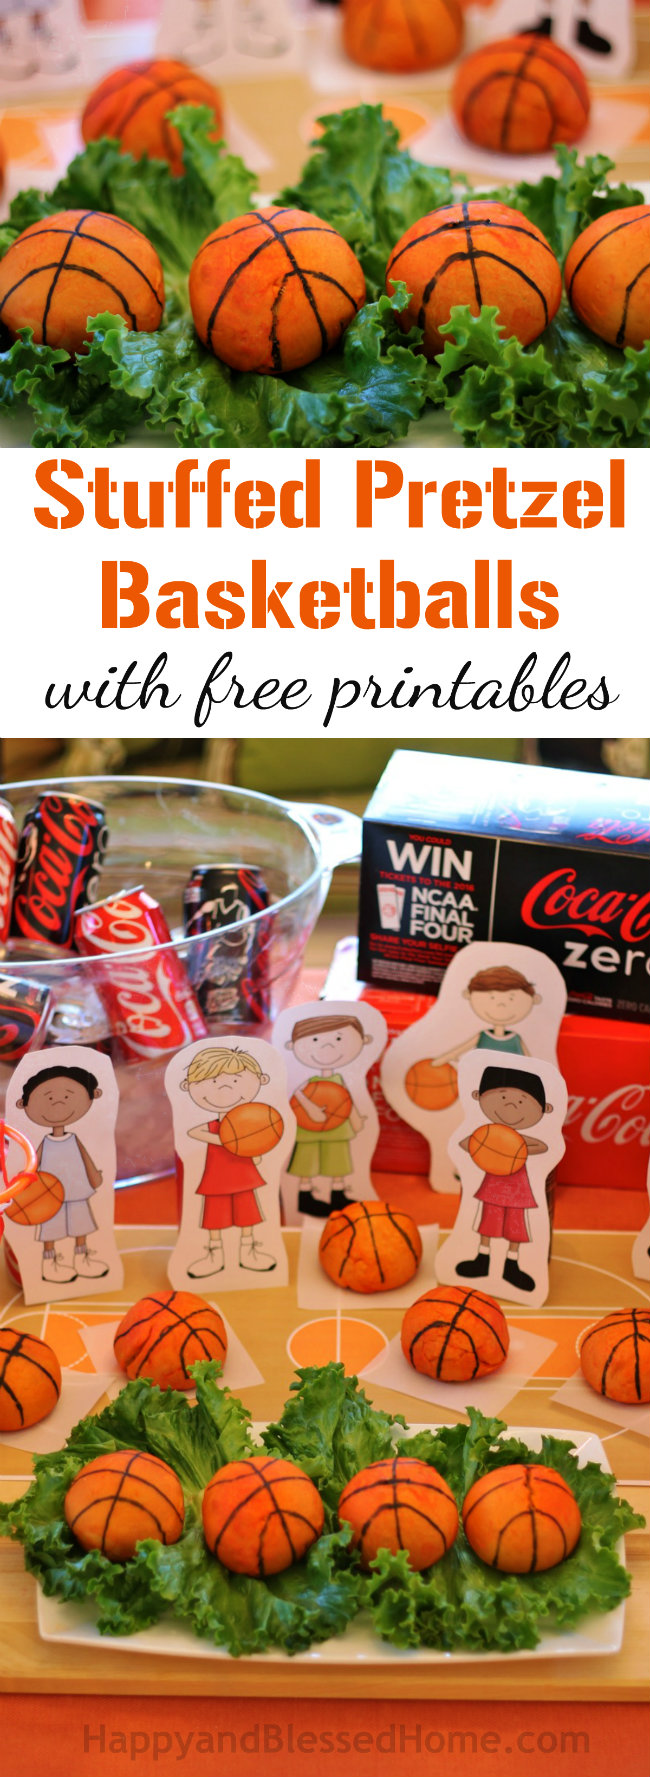 Tasty Stuffed Pretzel Basketballs recipe with Free Basketball Party Decor via Free Printables from HappyandBlessedHome.com.jpg